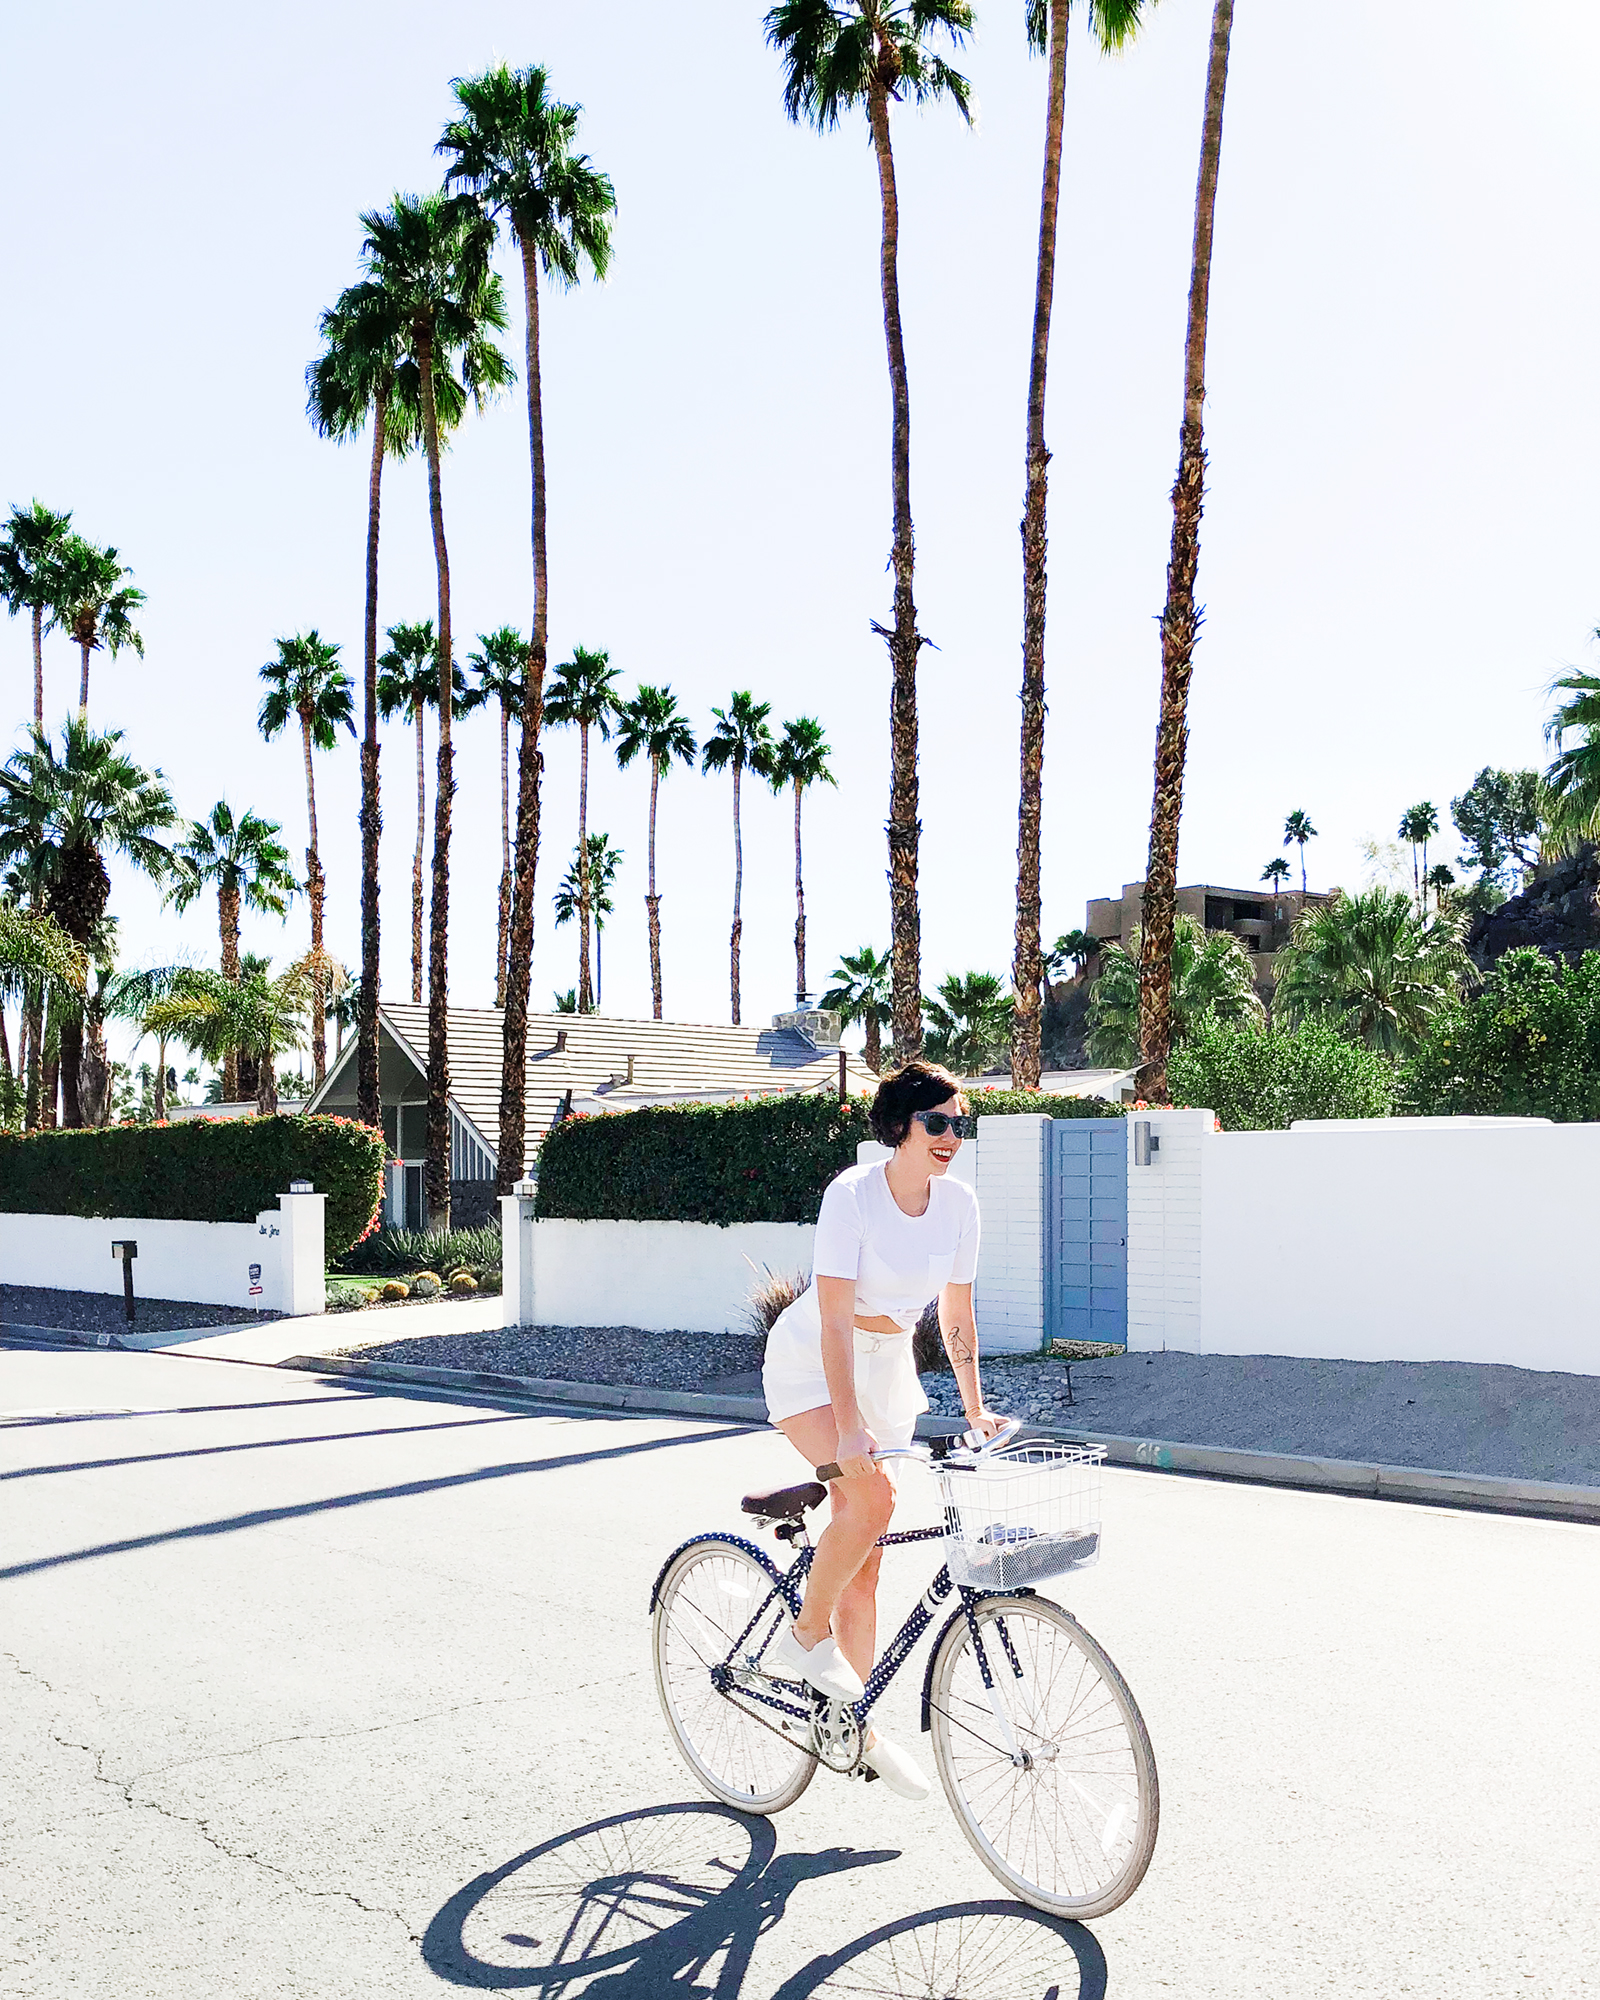 palm-springs-biking_02.jpg